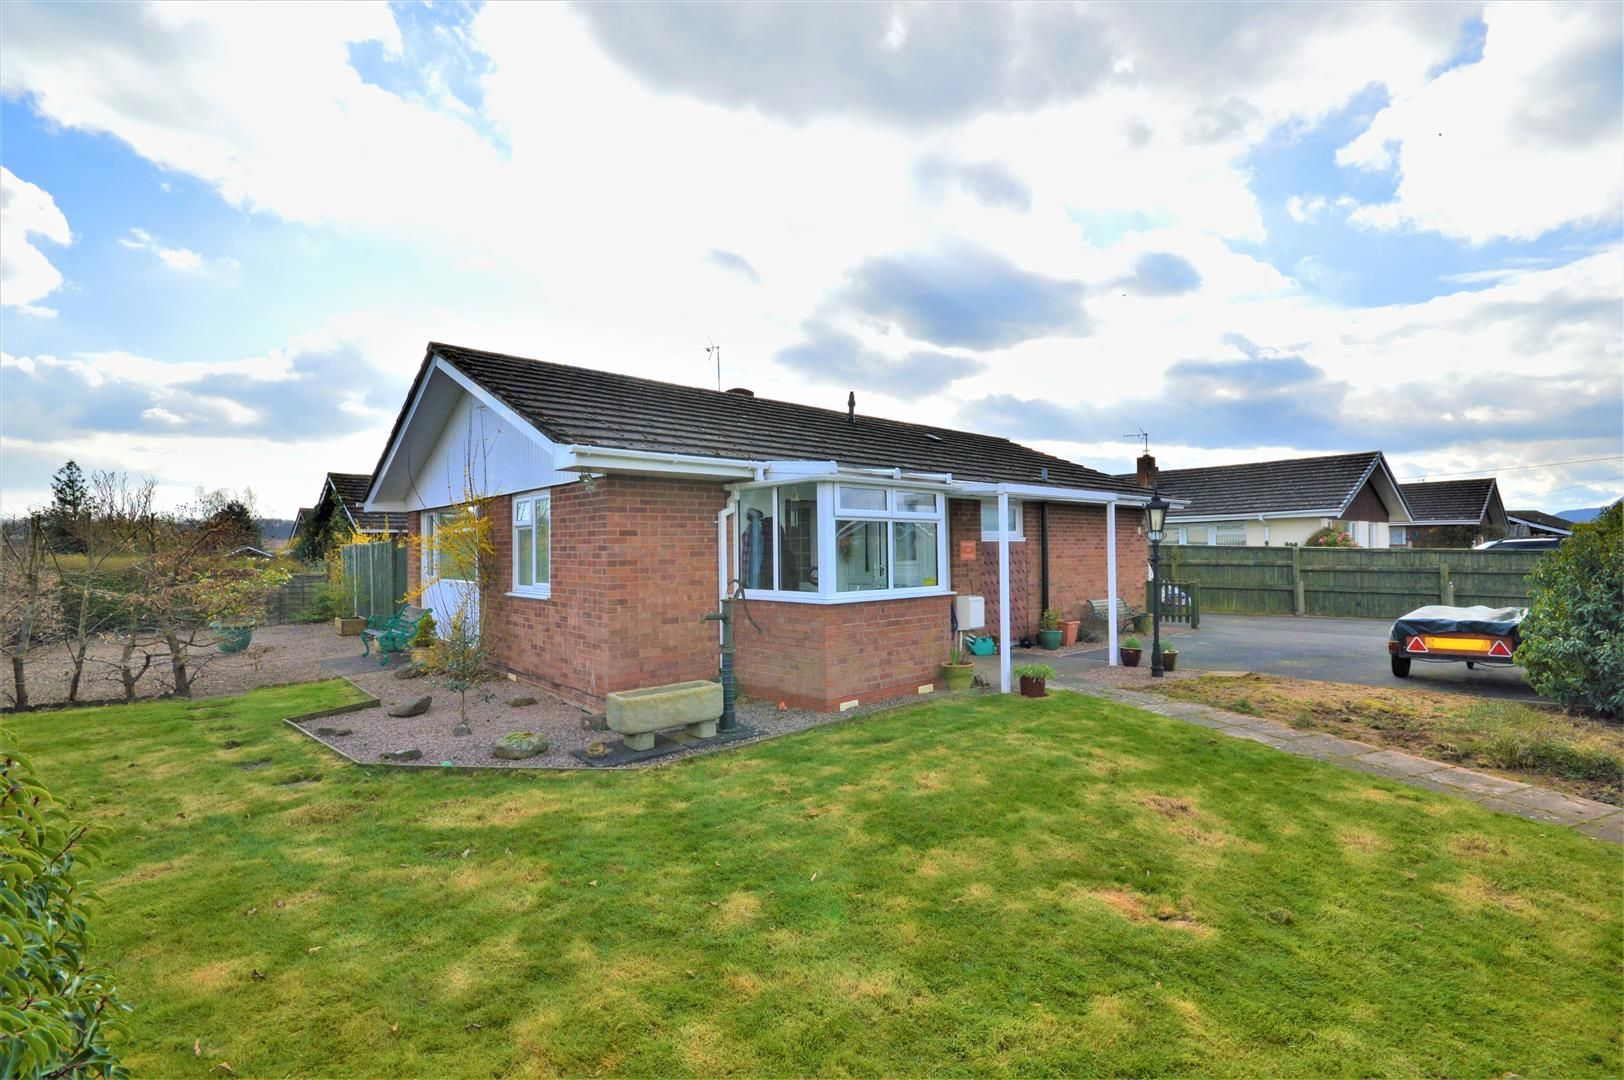 3 bed detached-bungalow for sale in Marden, HR1